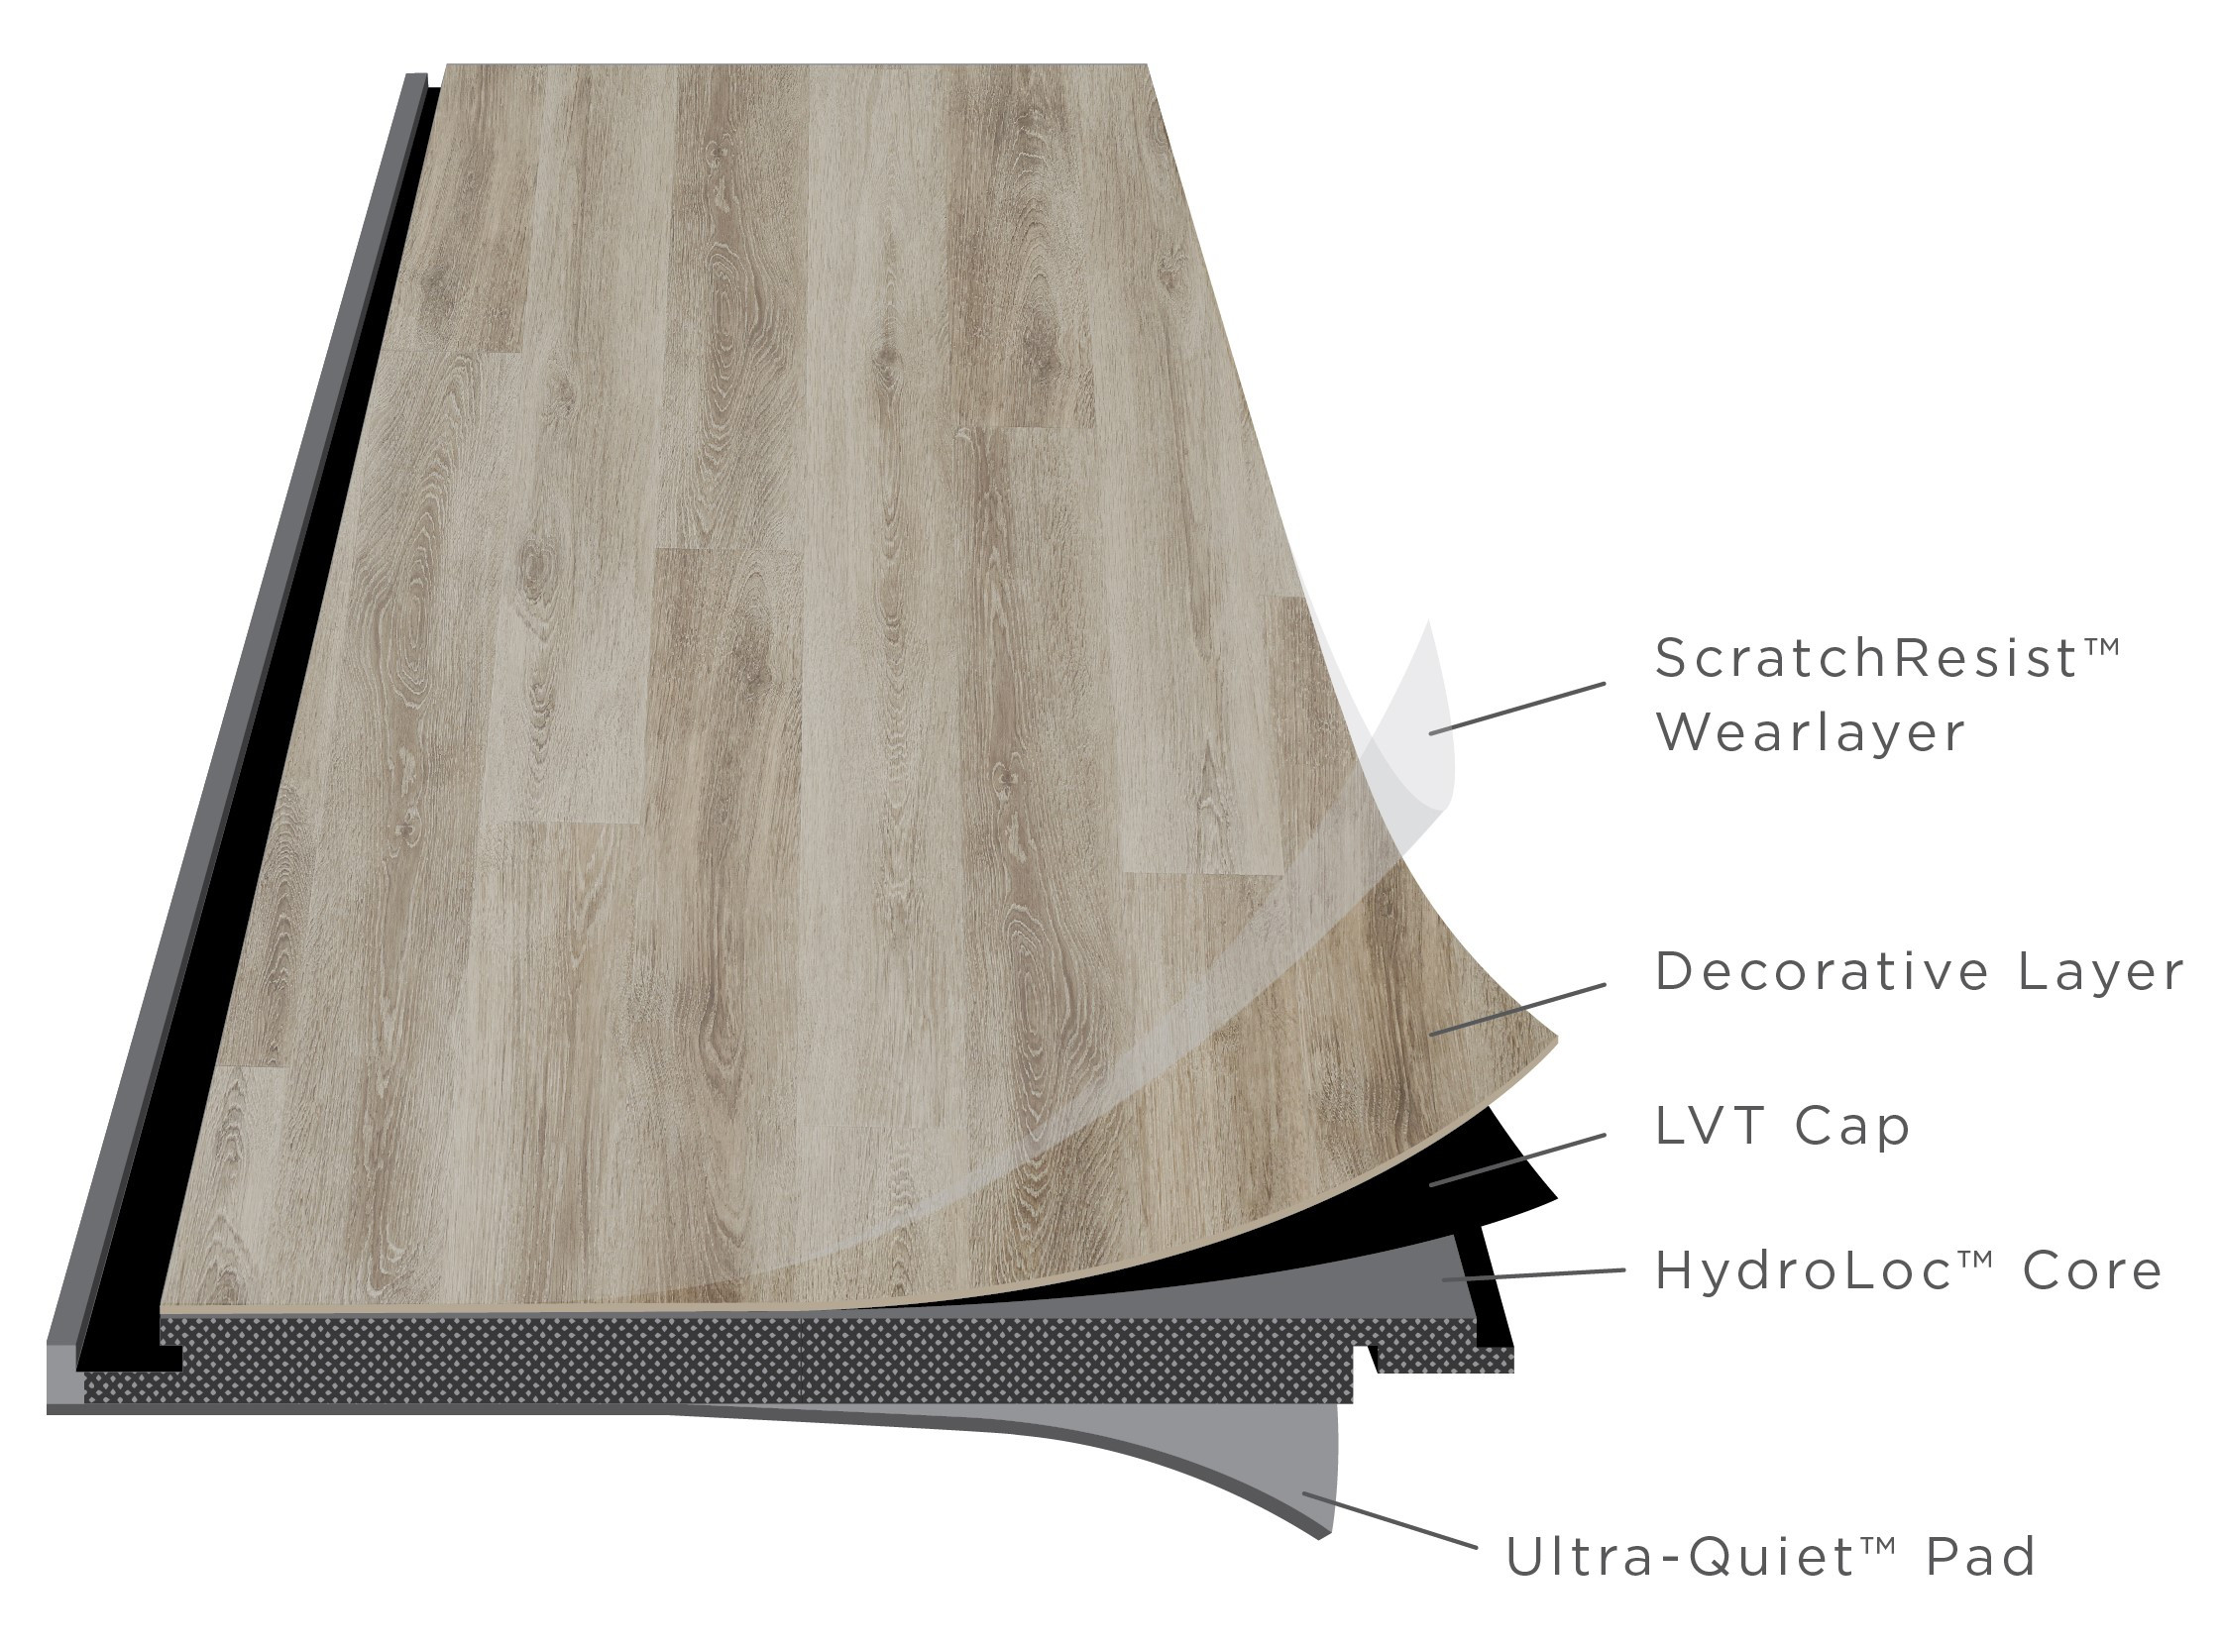 Maxcare Hardwood Flooring Reviews Of Aduraamax with Regard to 684e3aa5f35342be986906158c7dd6f1 ashx